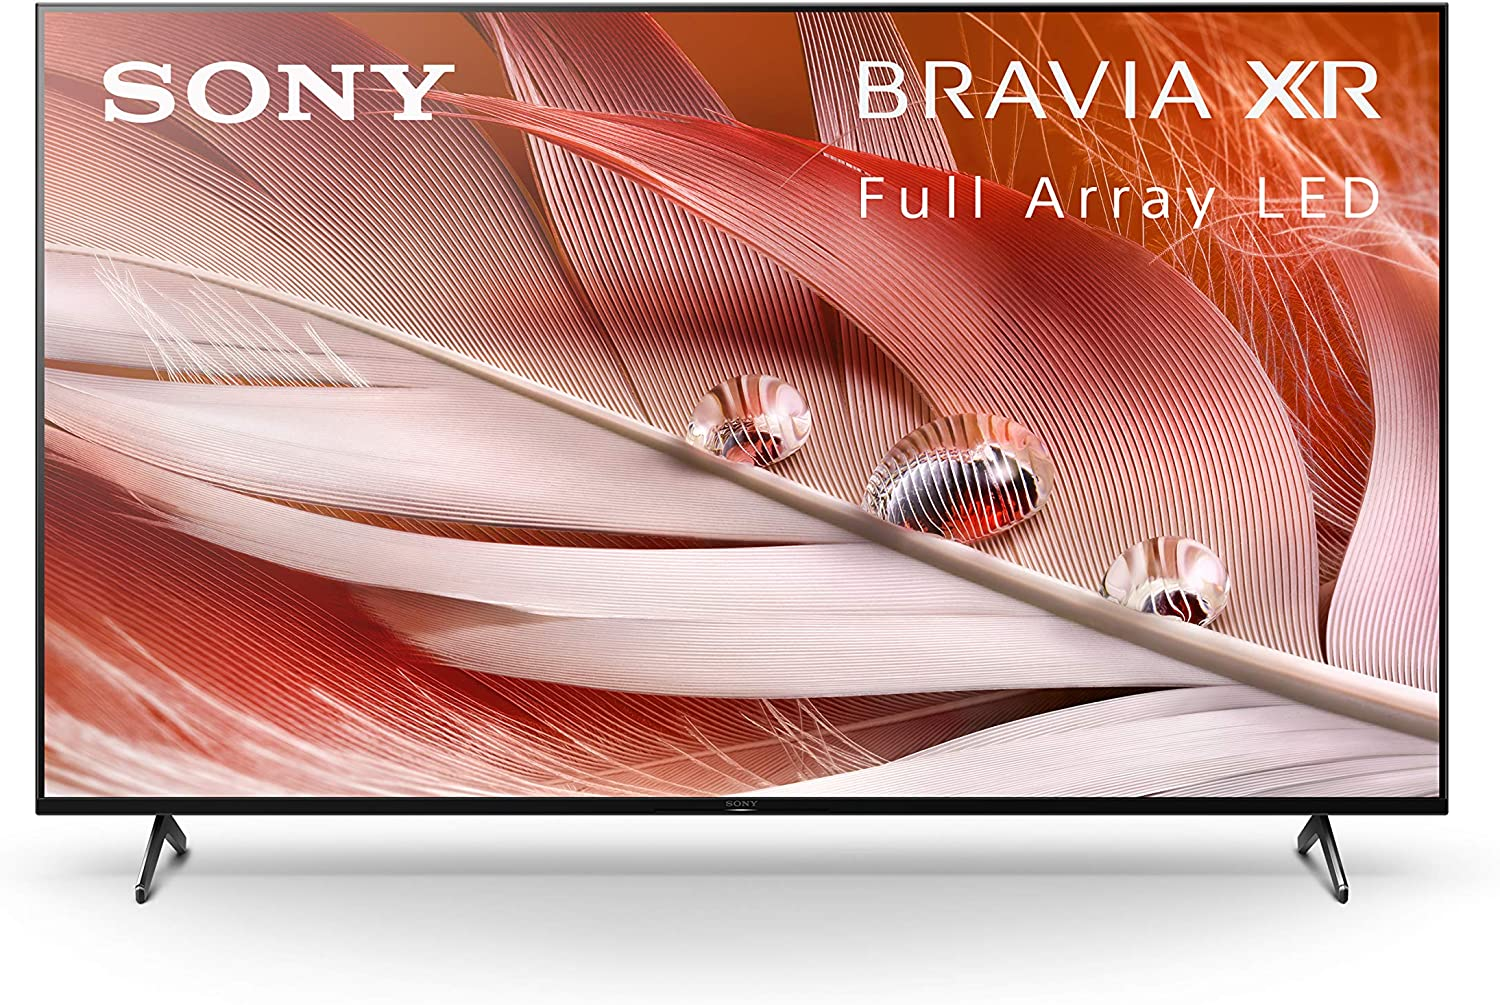 Sony X90J 55 inches TV - Best Gaming TV With High Resolution